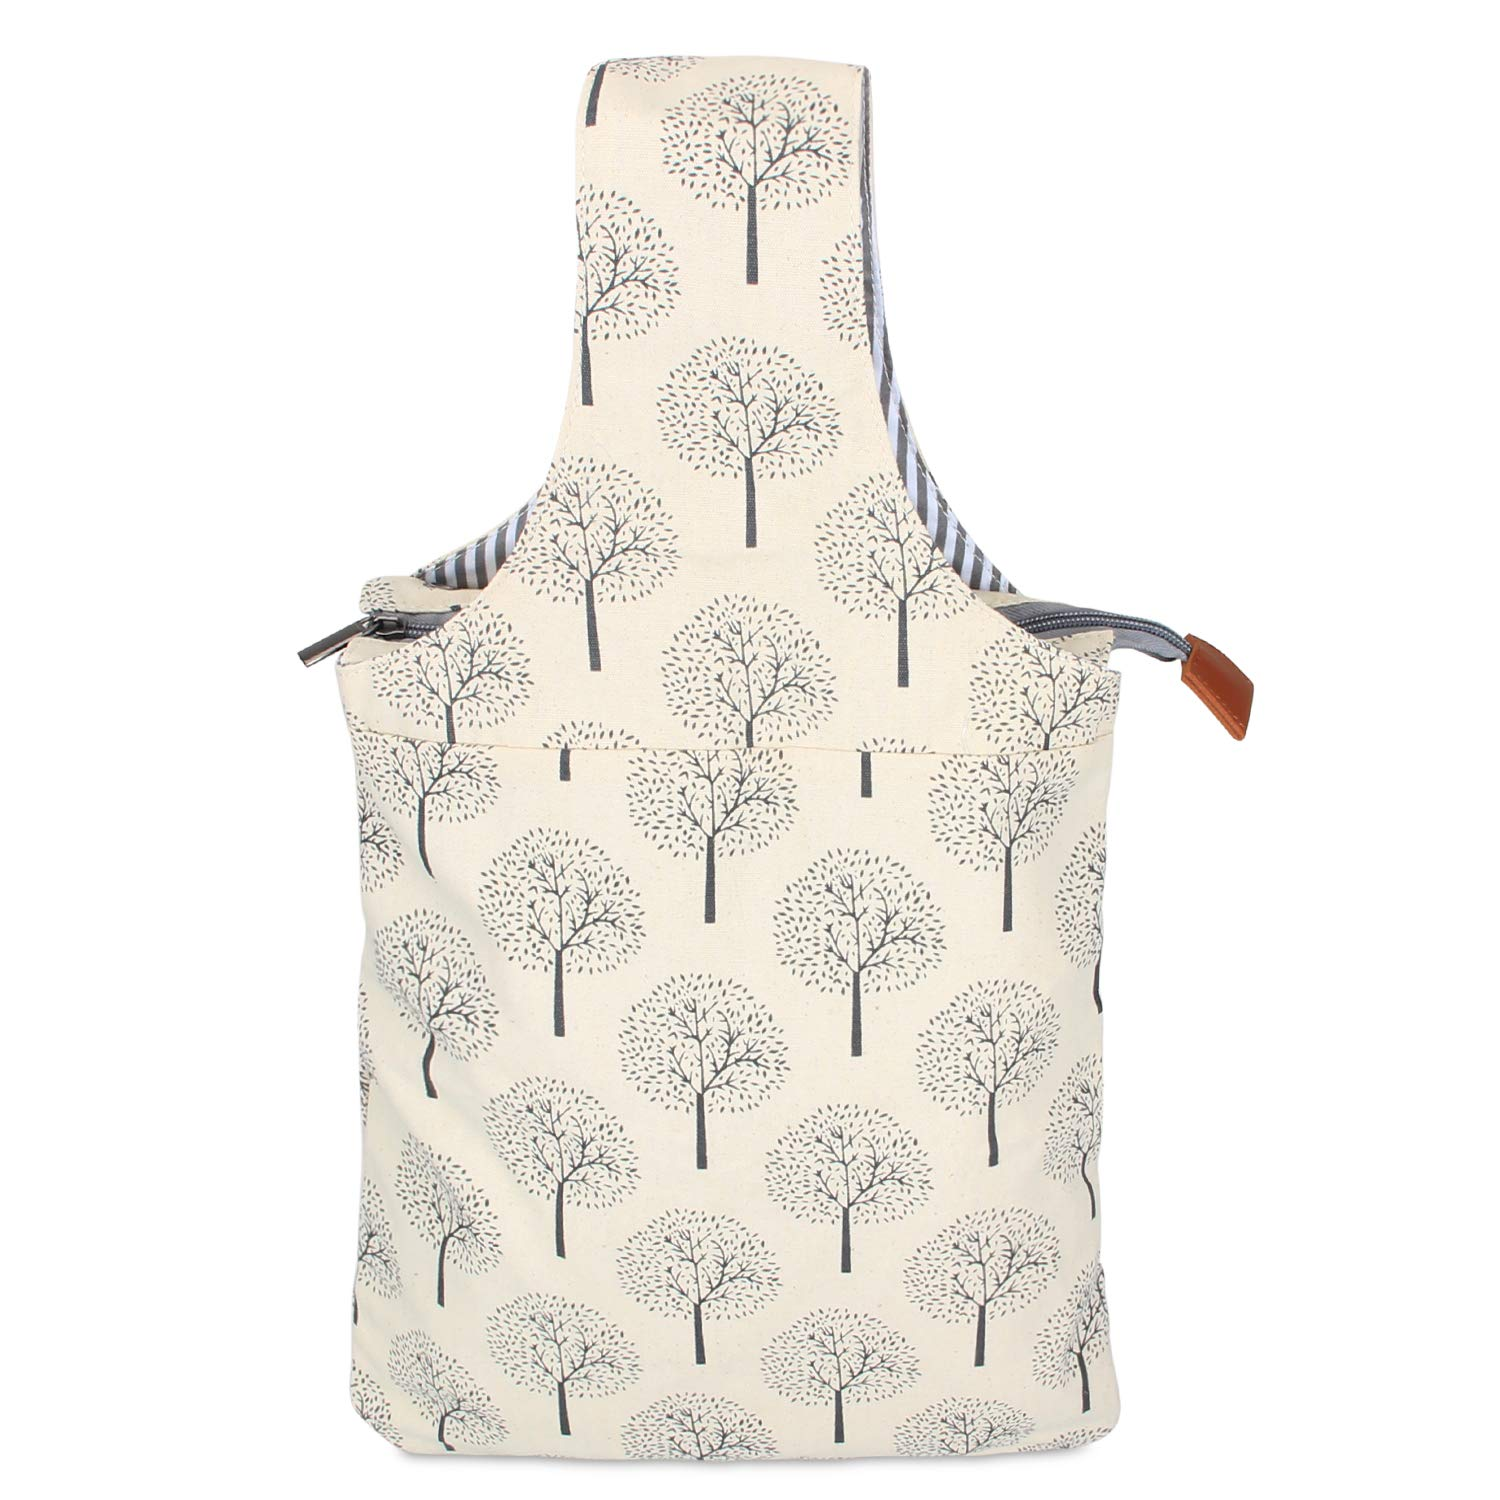 (Tree) - Teamoy Knitting Bag, Canvas Yarn Tote Project Bag for knitting Needles, Yarn and Crochet Supplies, Perfect Size for Knitting on The Go, Tree B078GN7V78 木